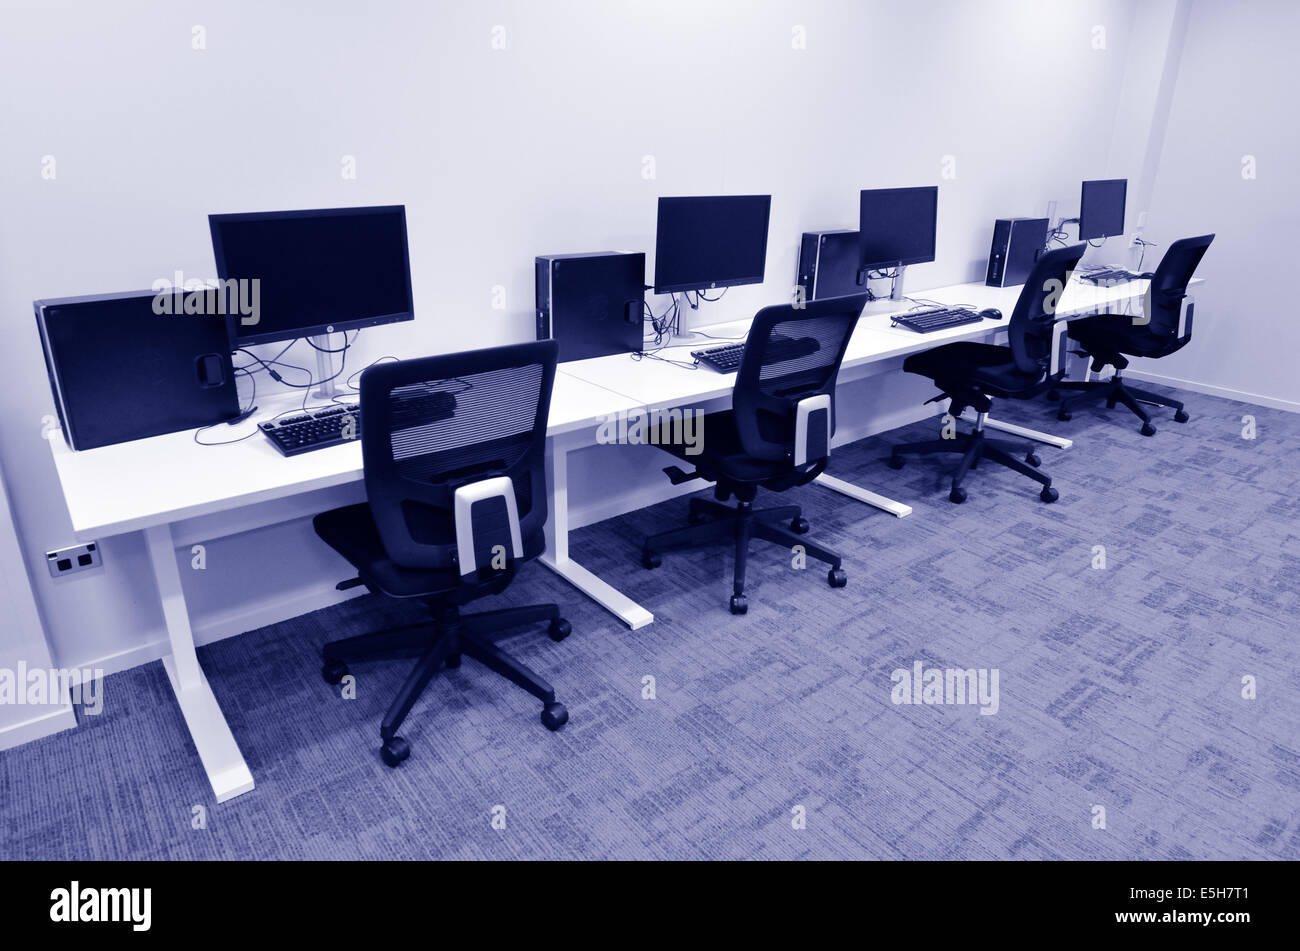 Computer Lab Room With Empty Workstation Office Desk And Chairs. Concept  Photo Of Business Workplace